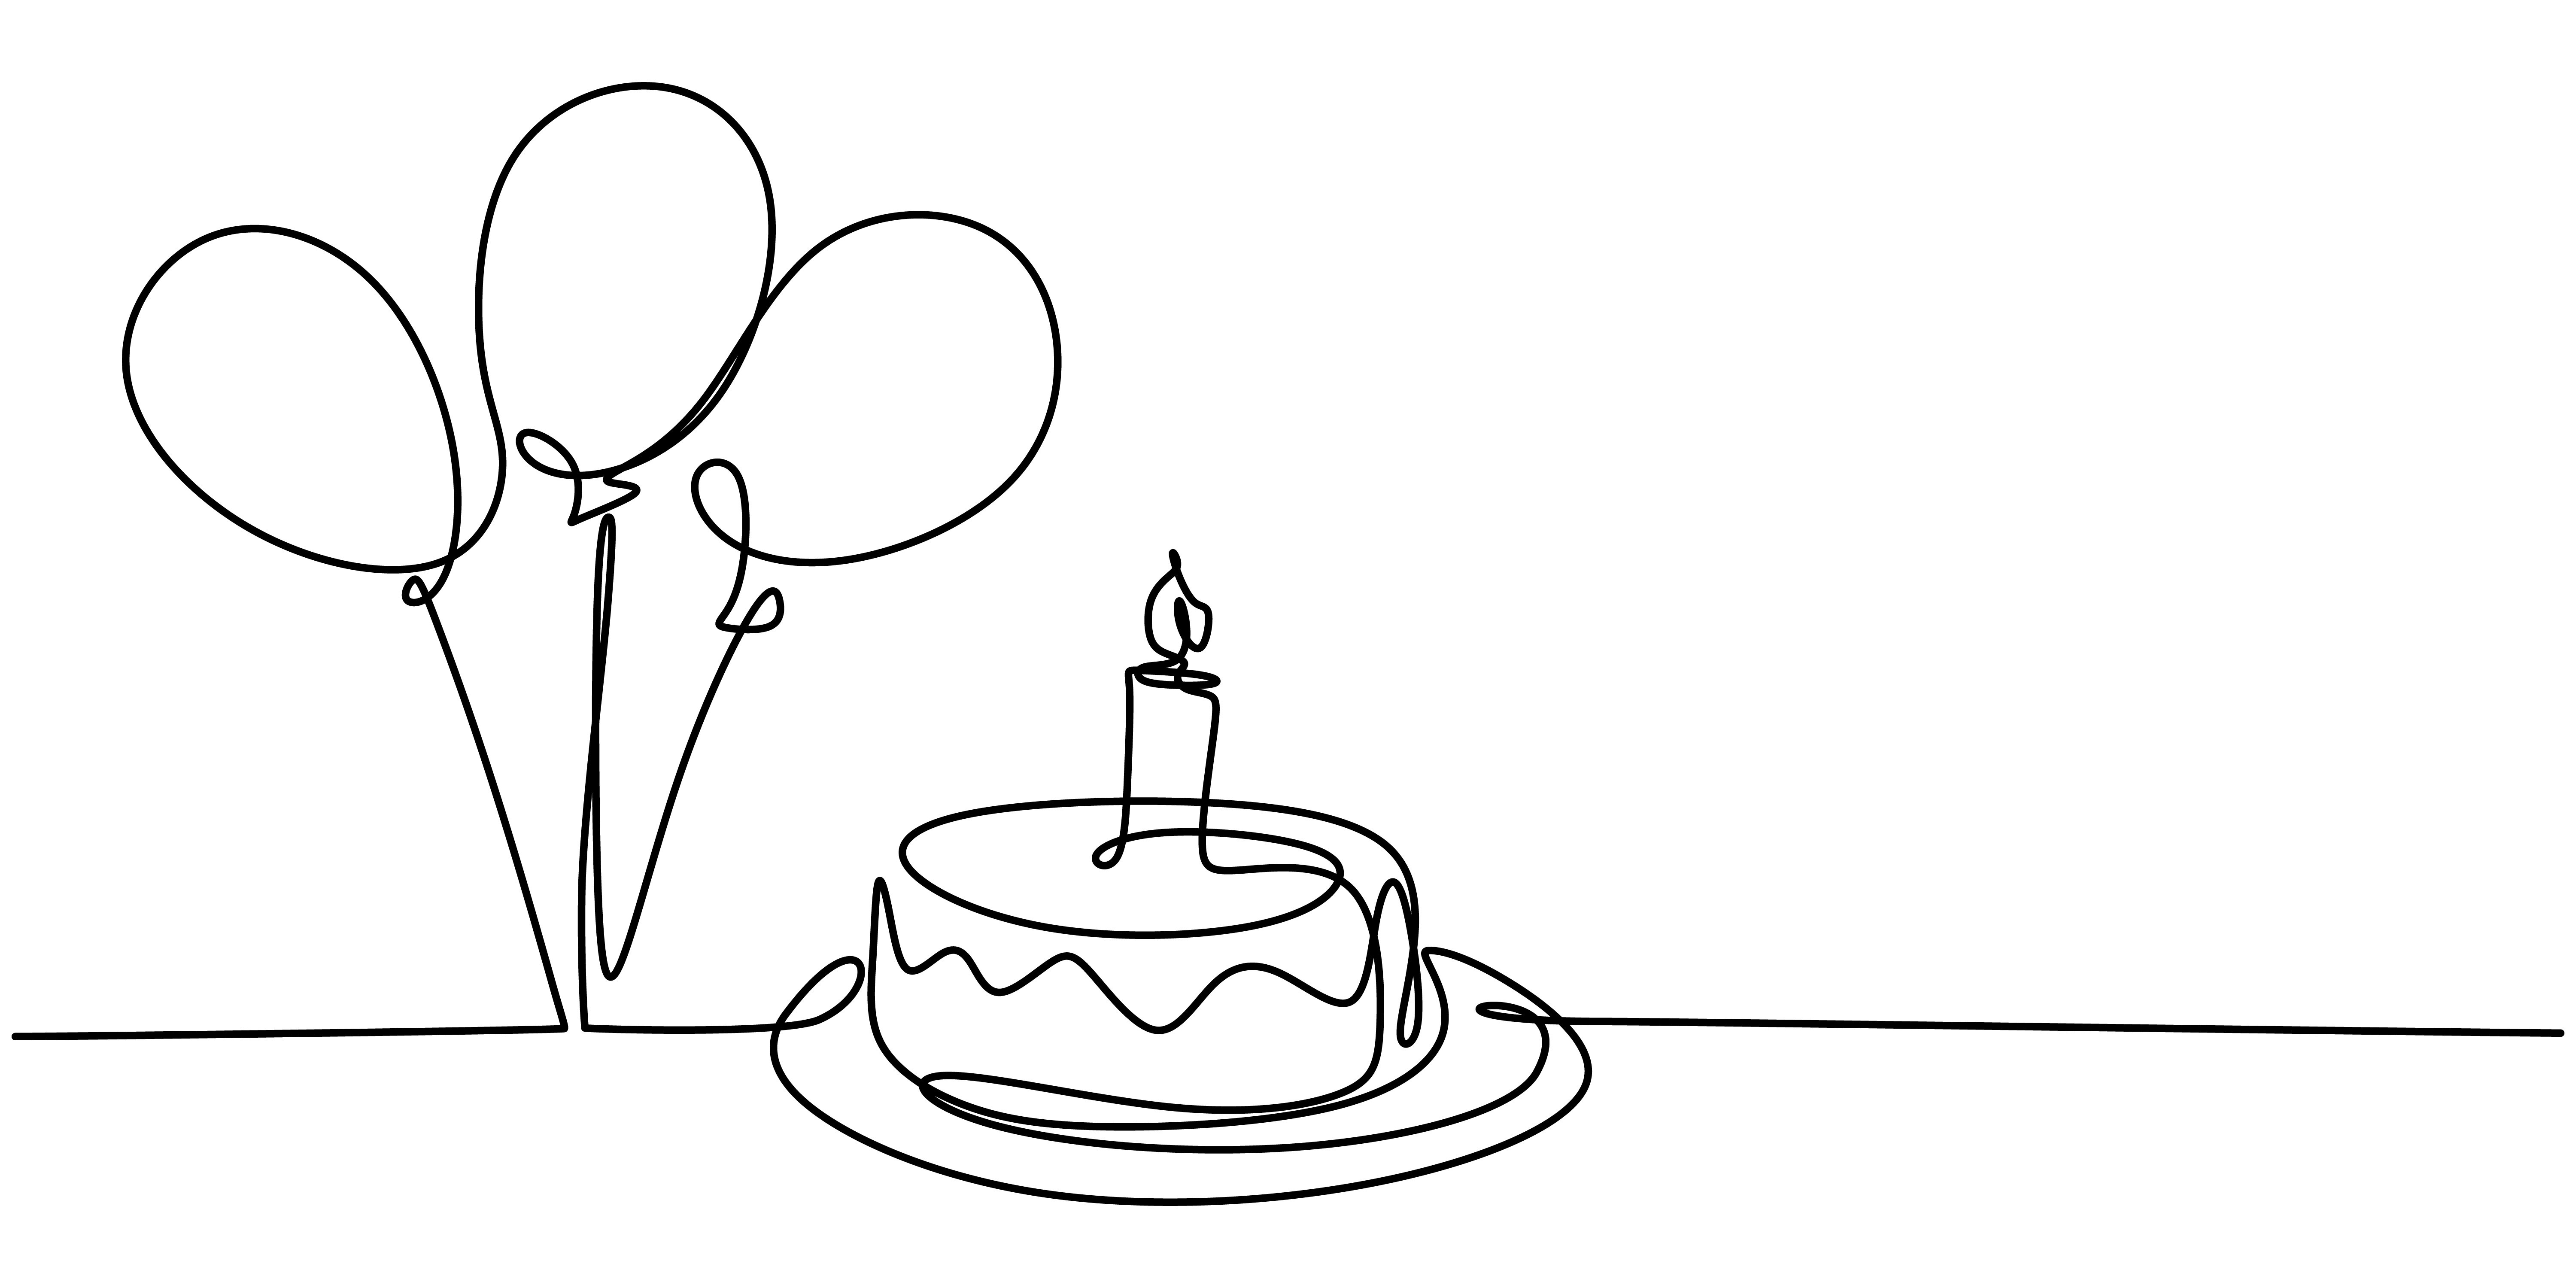 Continuous Line Drawing Of Birthday Cake A Cake With Sweet Cream And Candle 1903585 Vector Art At Vecteezy